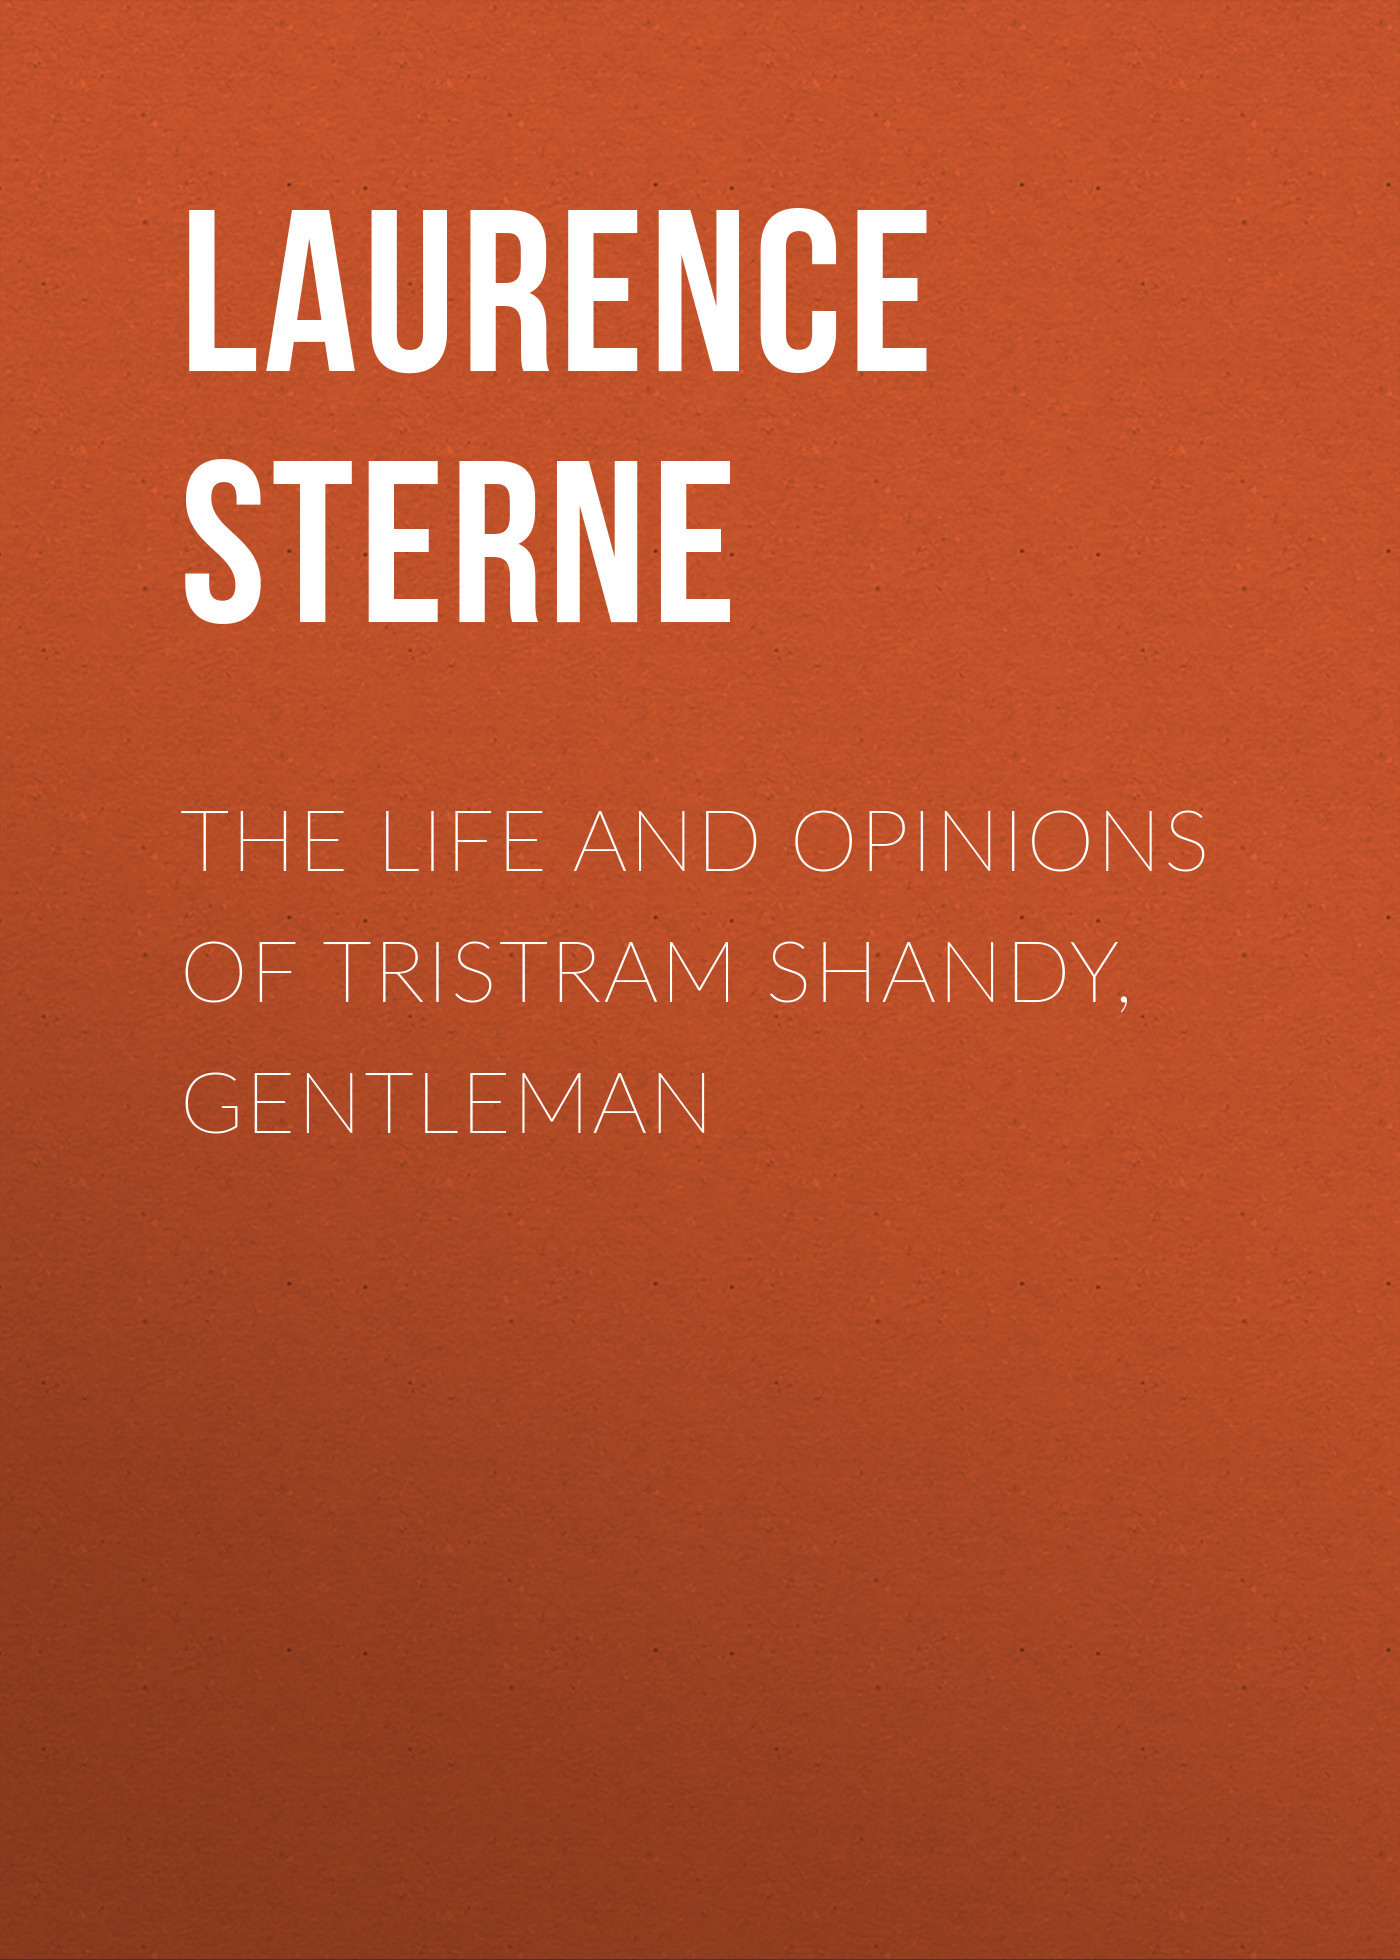 Laurence Sterne The Life and Opinions of Tristram Shandy, Gentleman ideas and opinions